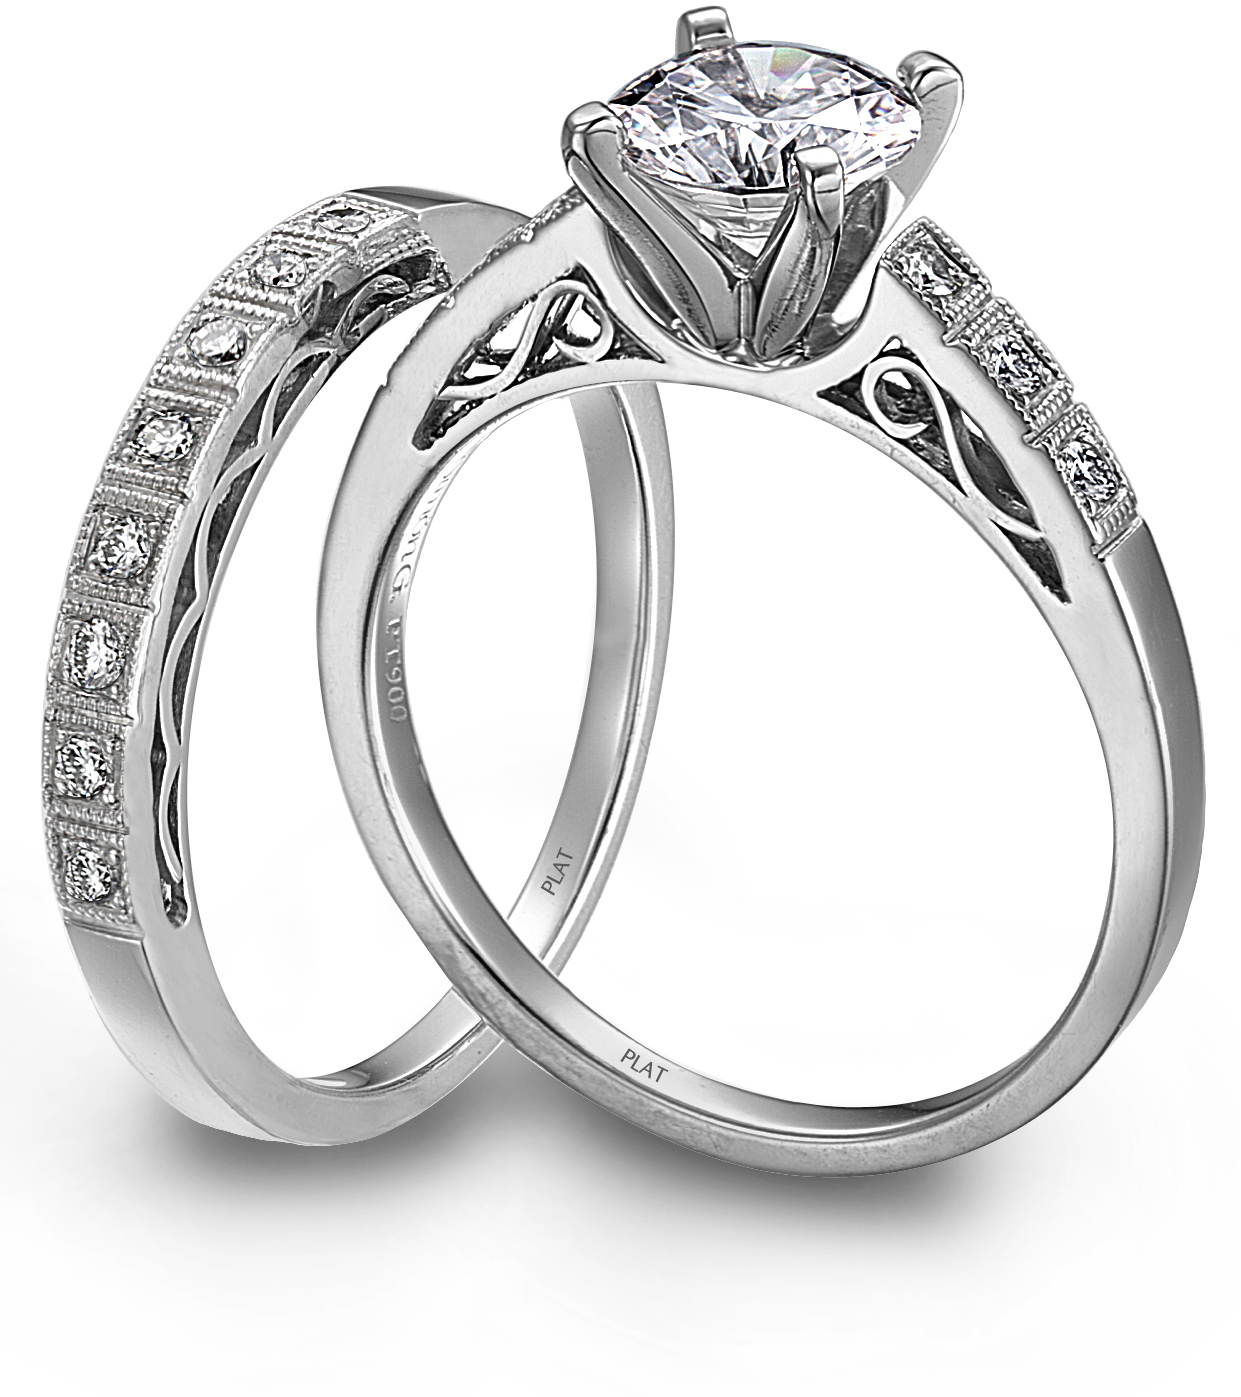 Jewelry Store Losed Womans Wedding Ring  Bridal Gowns in